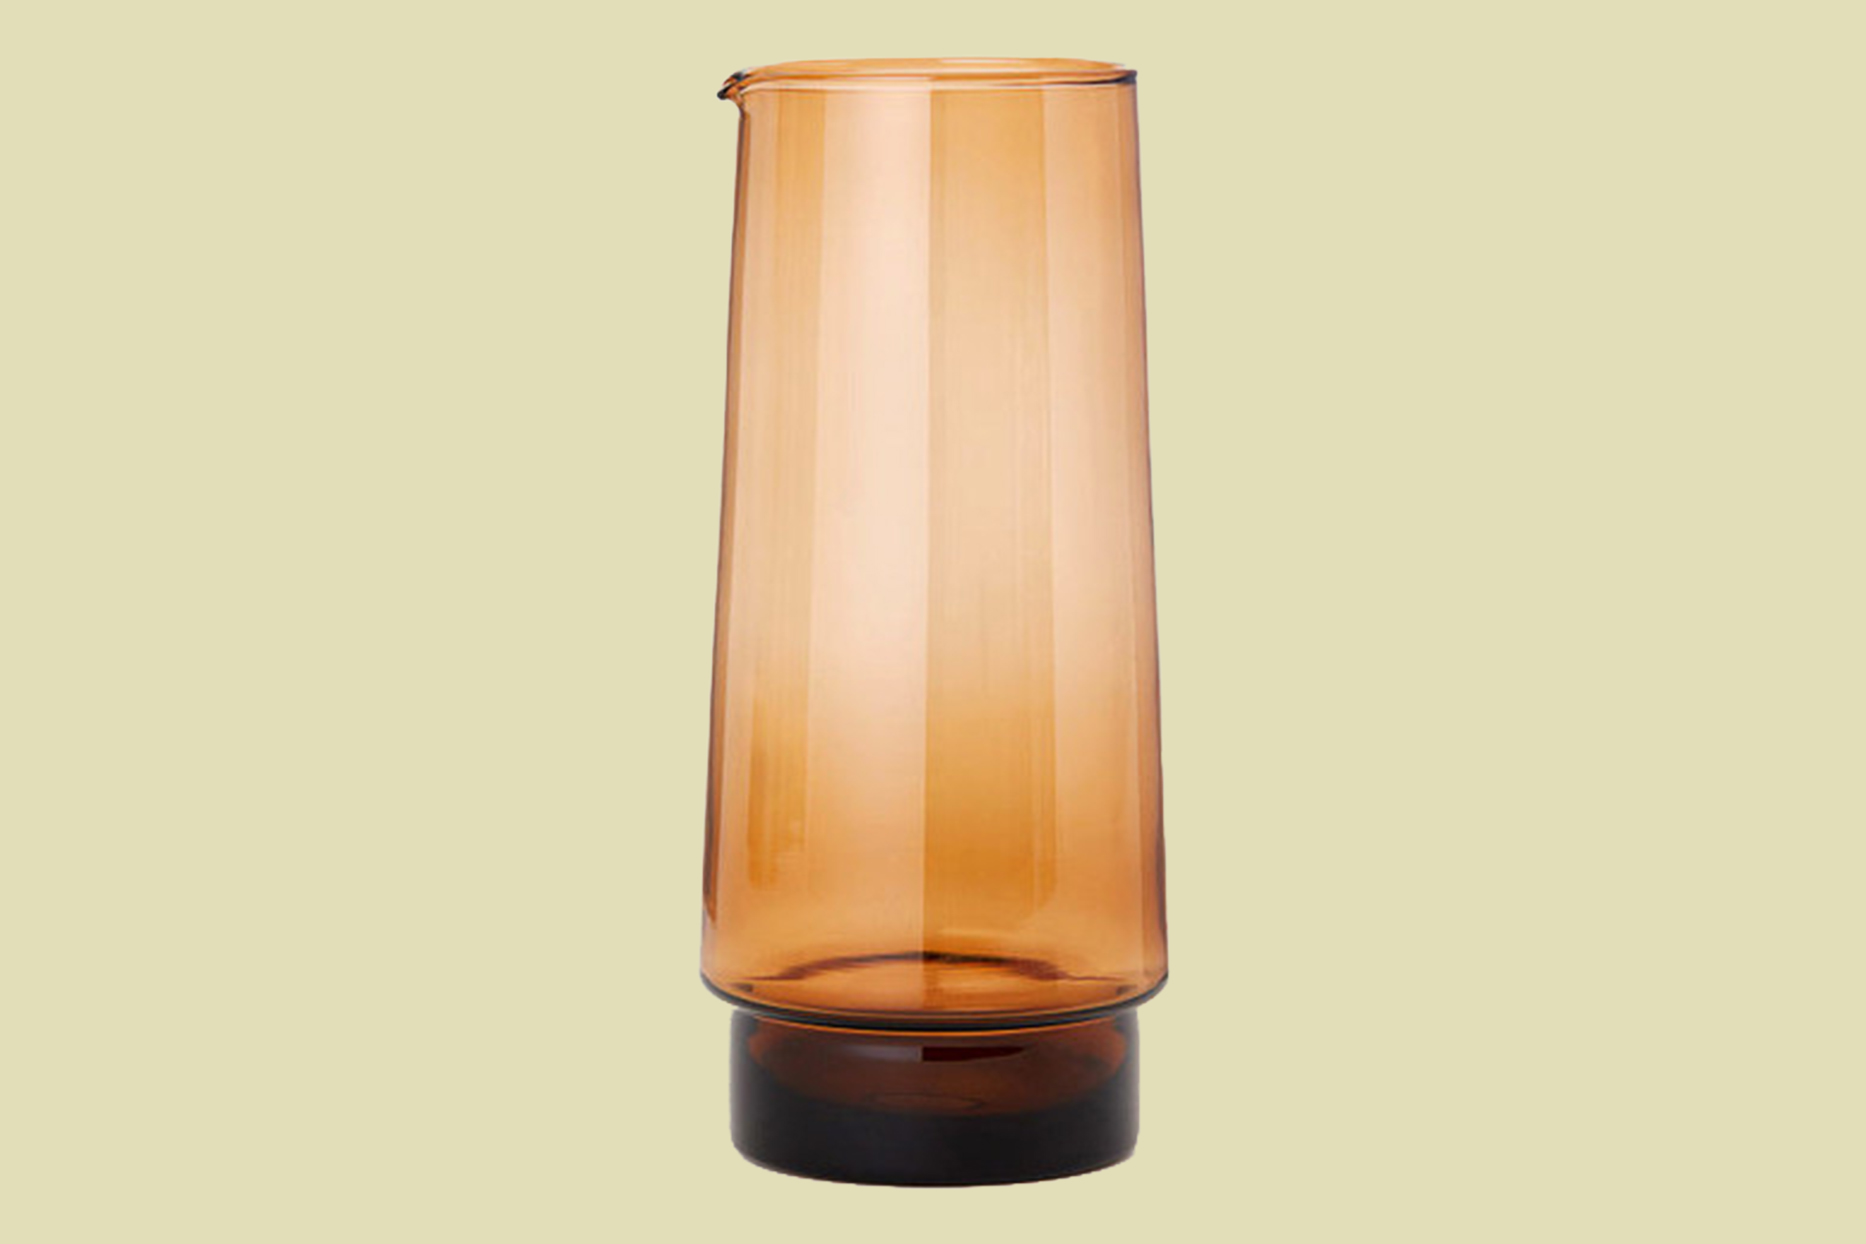 H&M Home Glass Carafe in Brown